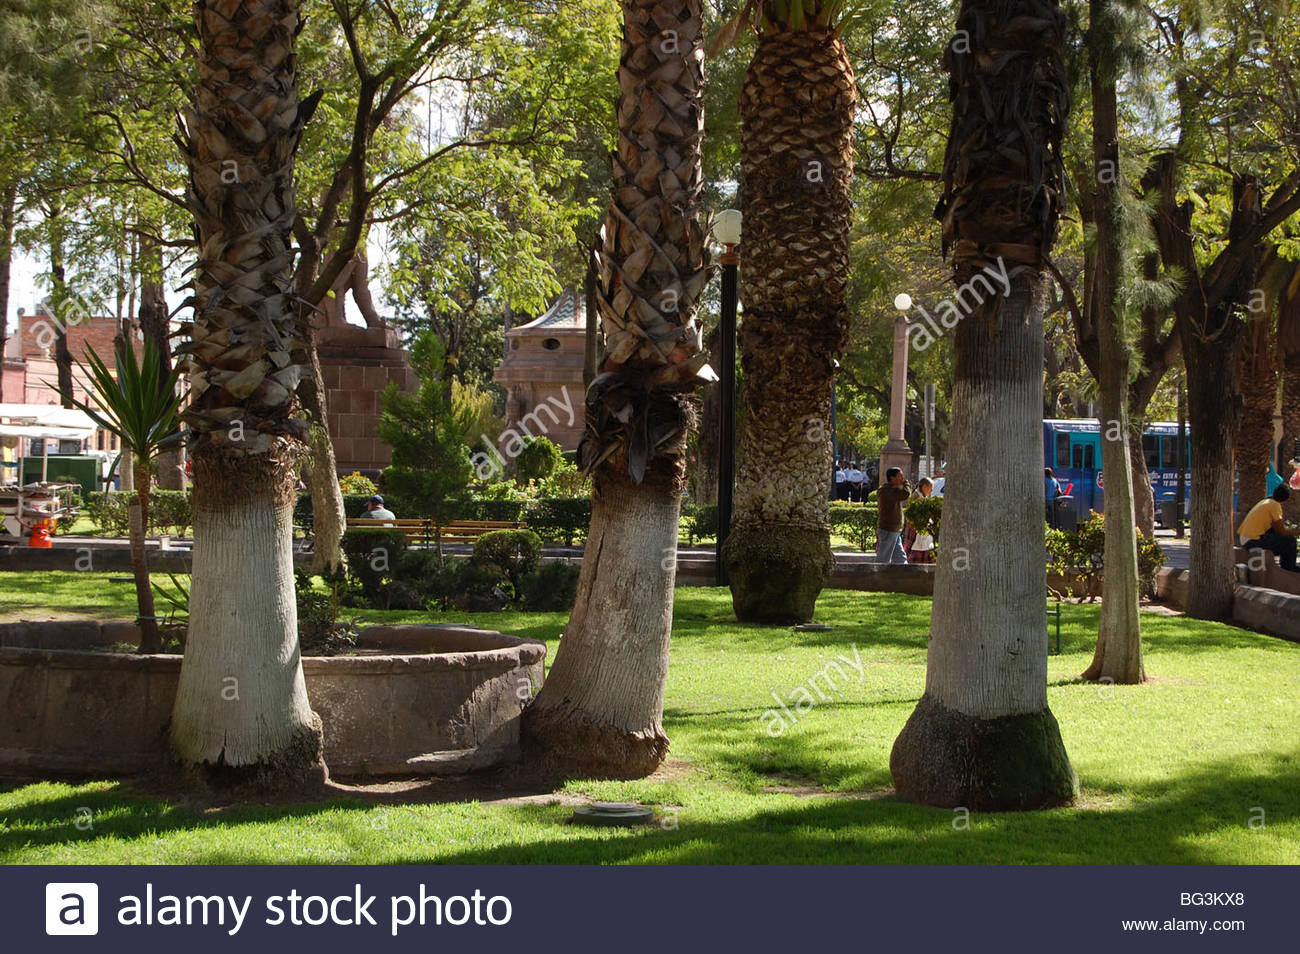 Urban park scene in Mexico with white painted tree trunks of palm trees. Stock Photo